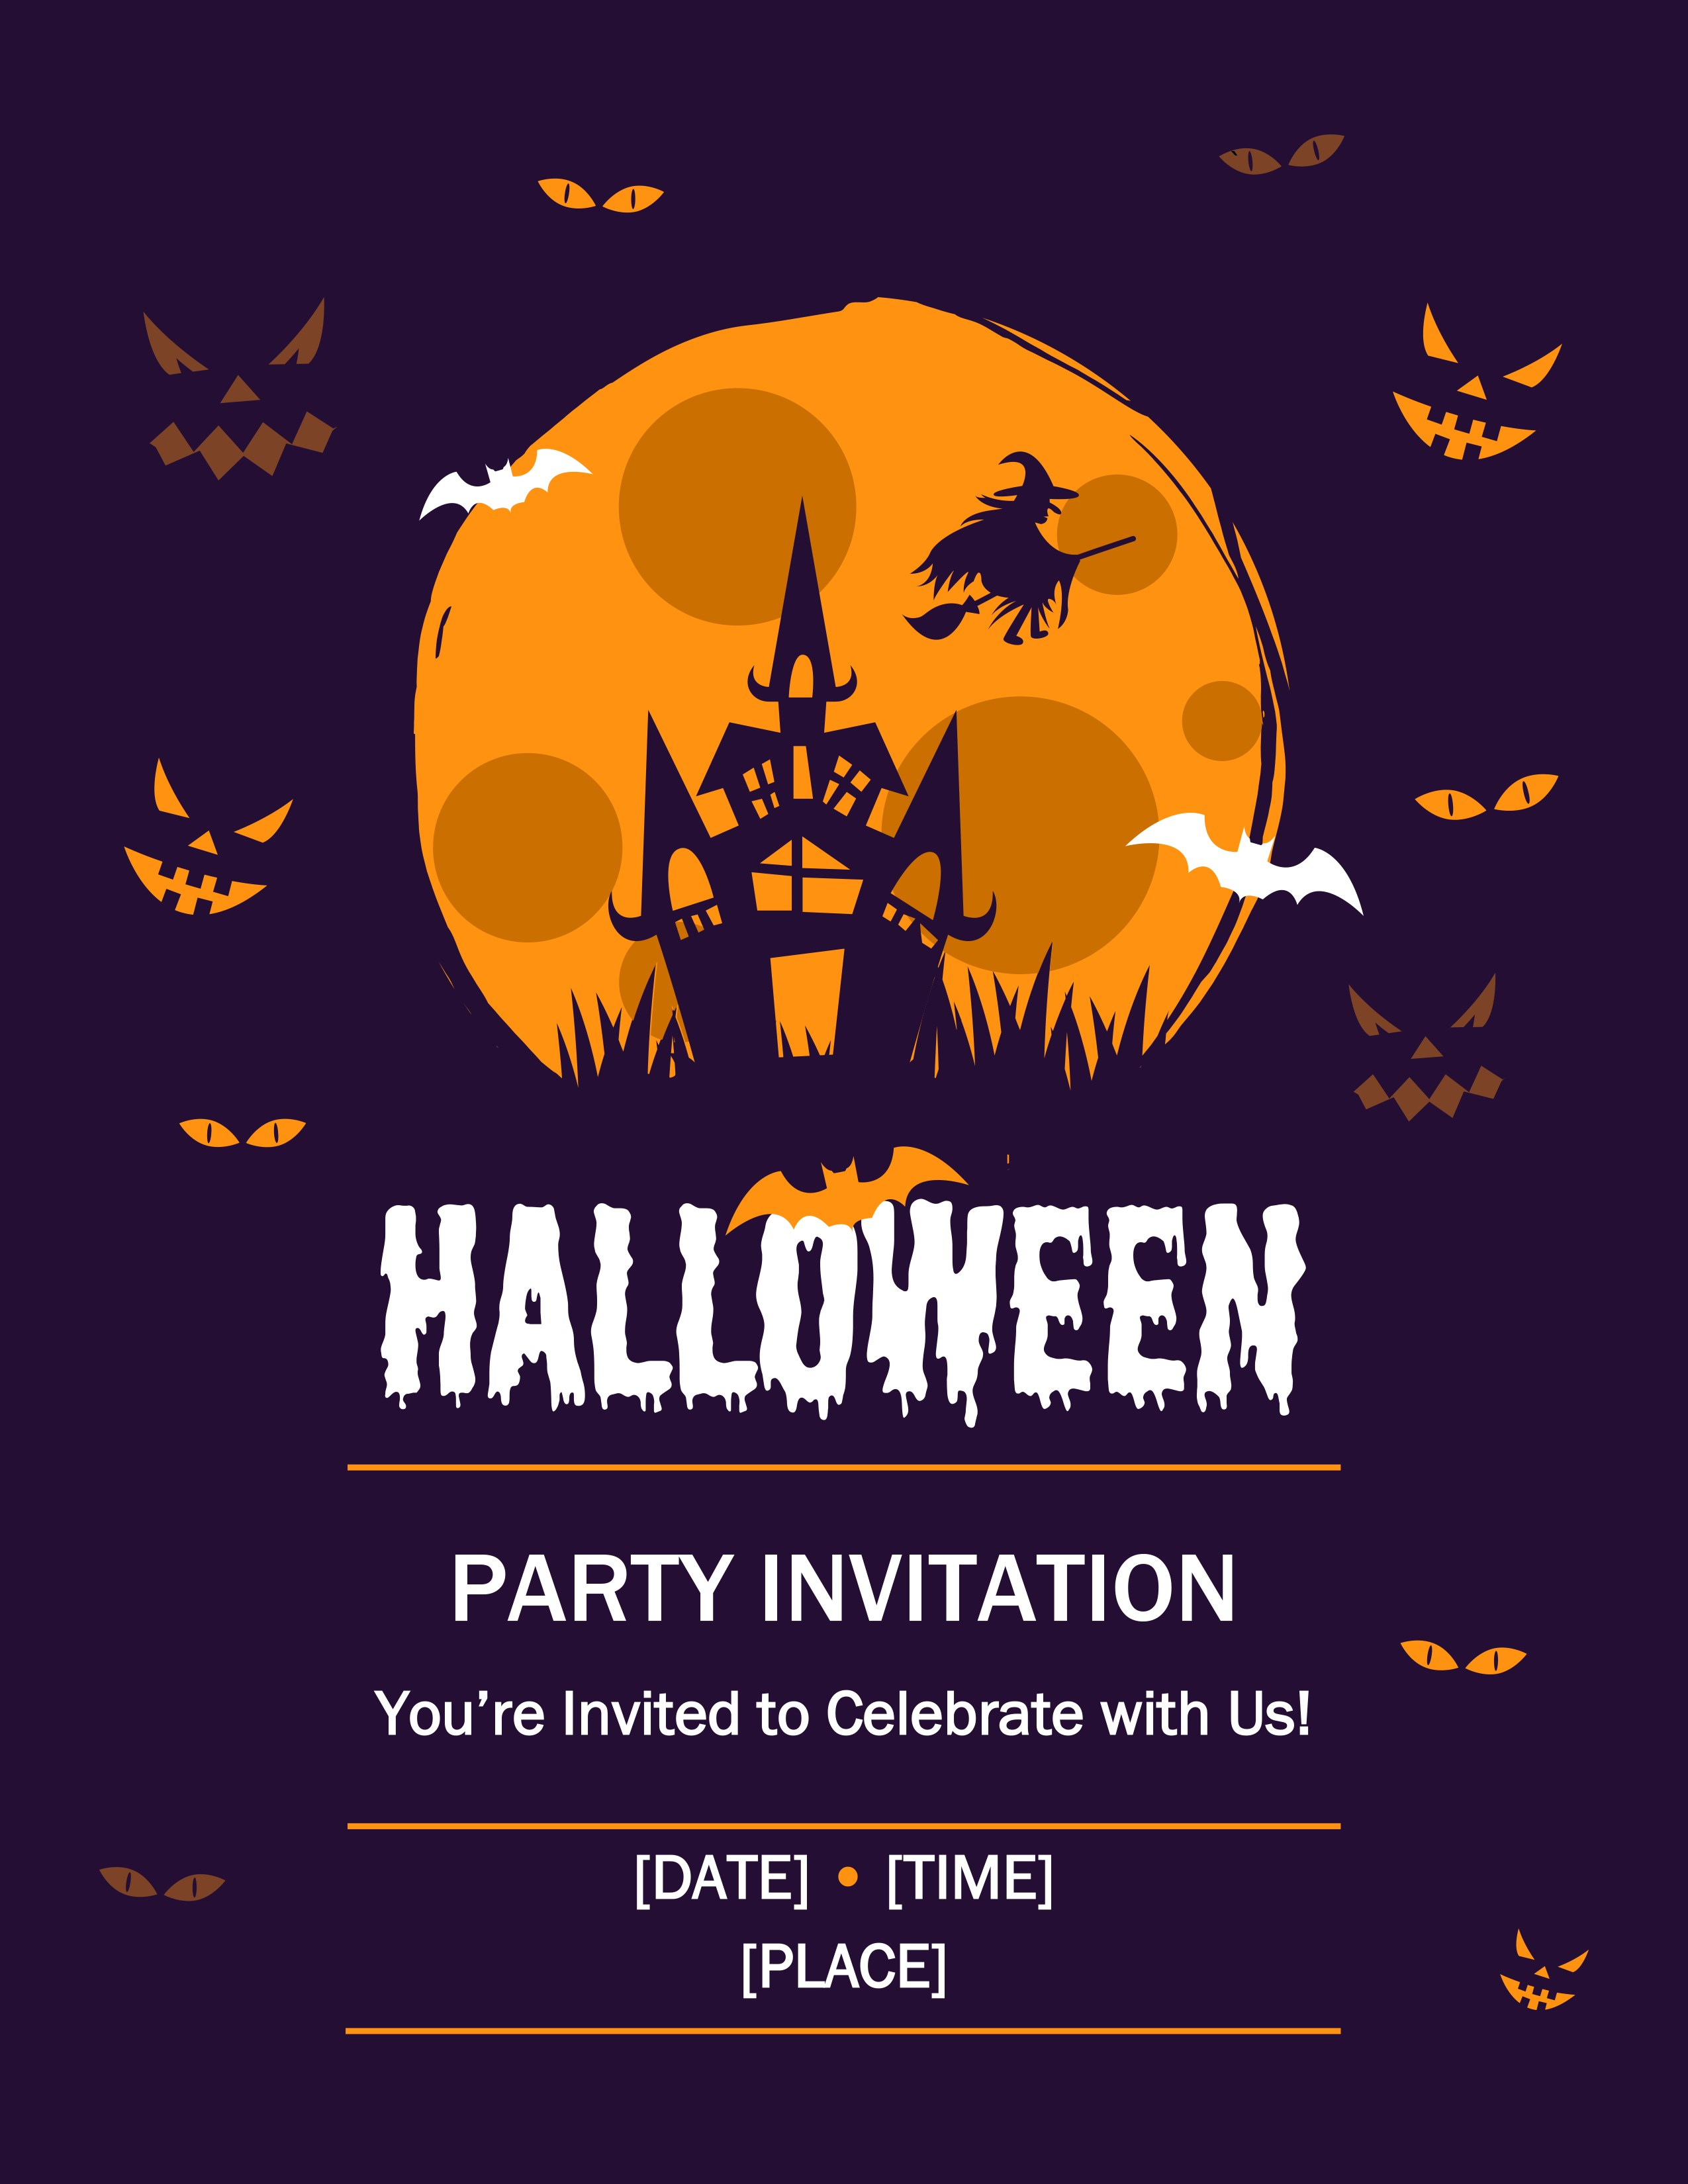 009 Template Ideas Halloween Flyer Free Awesome Templates Pertaining To Free Halloween Templates For Word